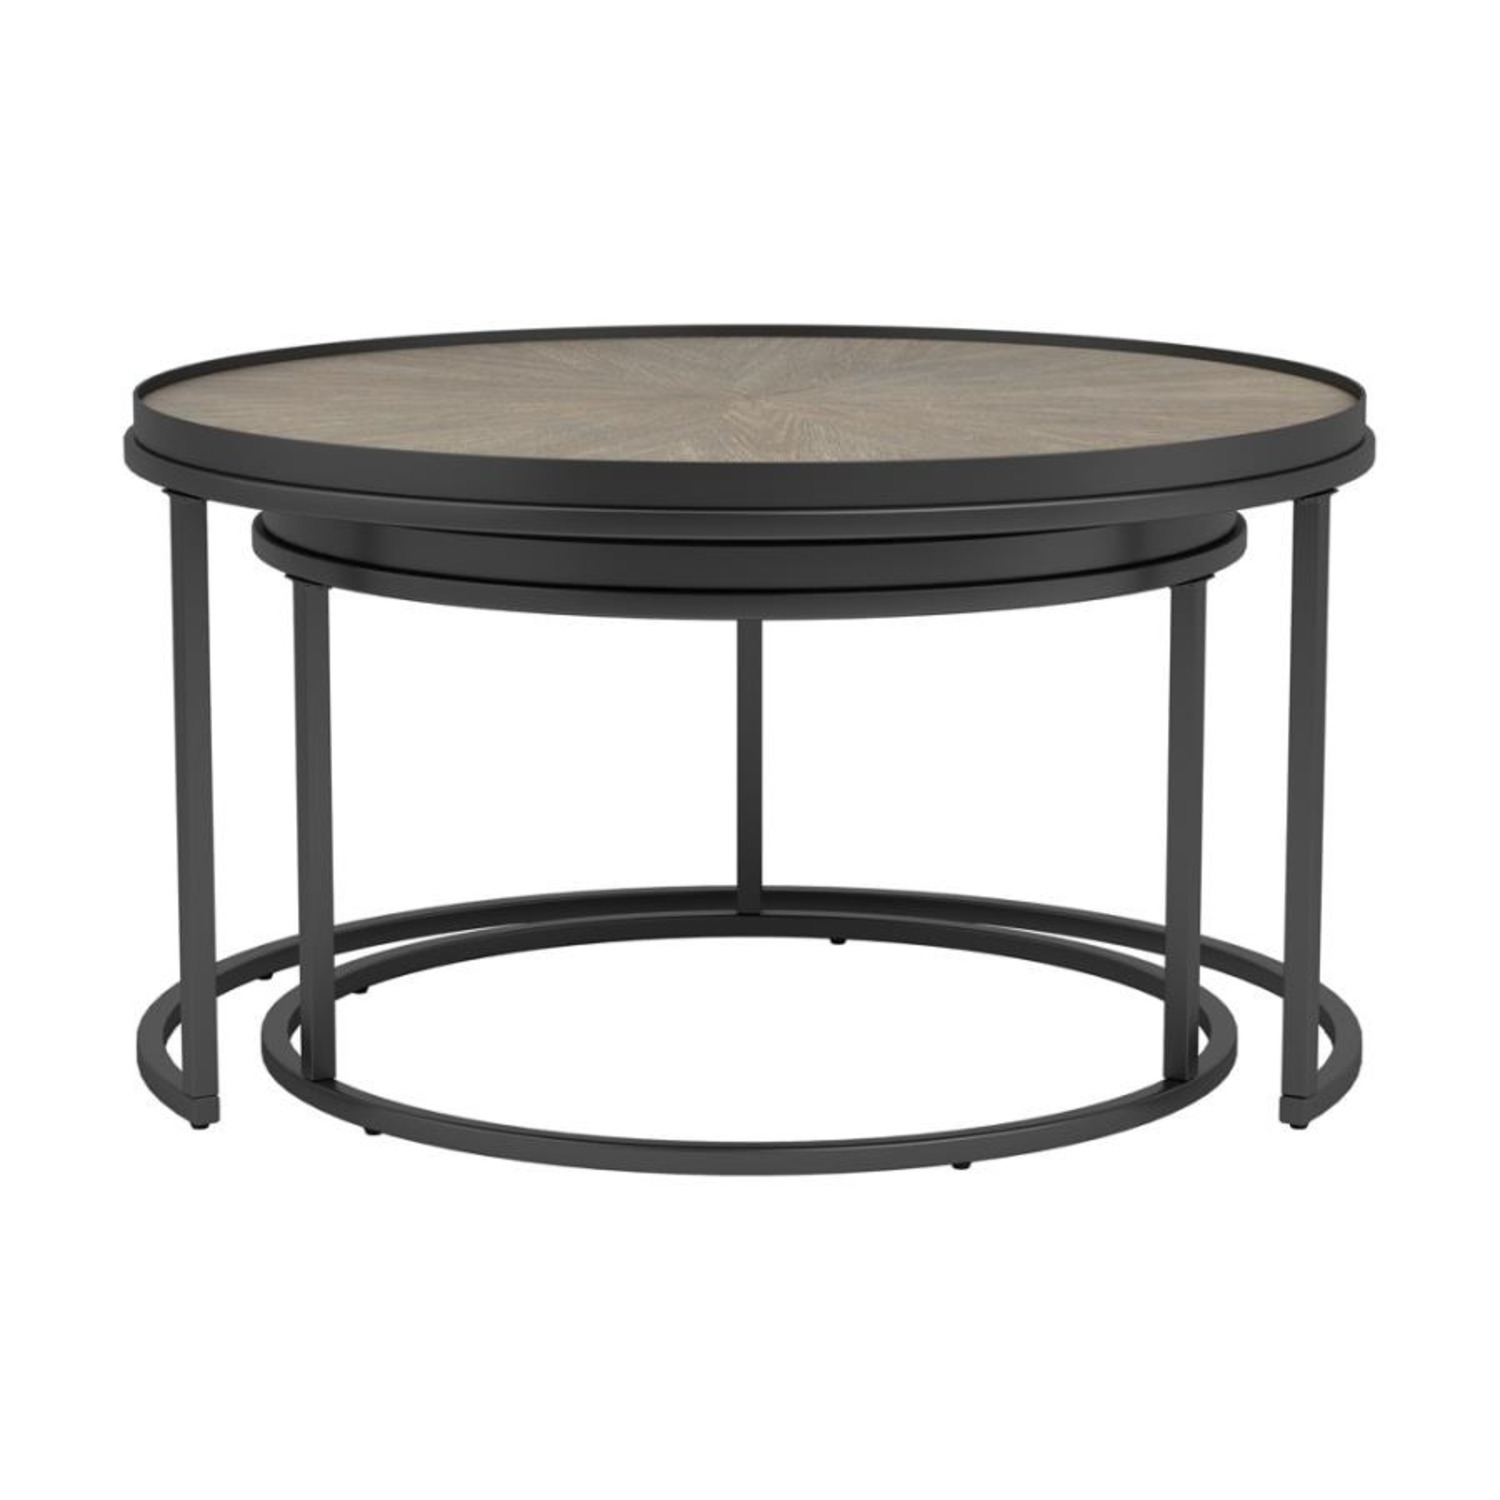 2-Piece Nesting Table In Weathered Elm Finish - image-2